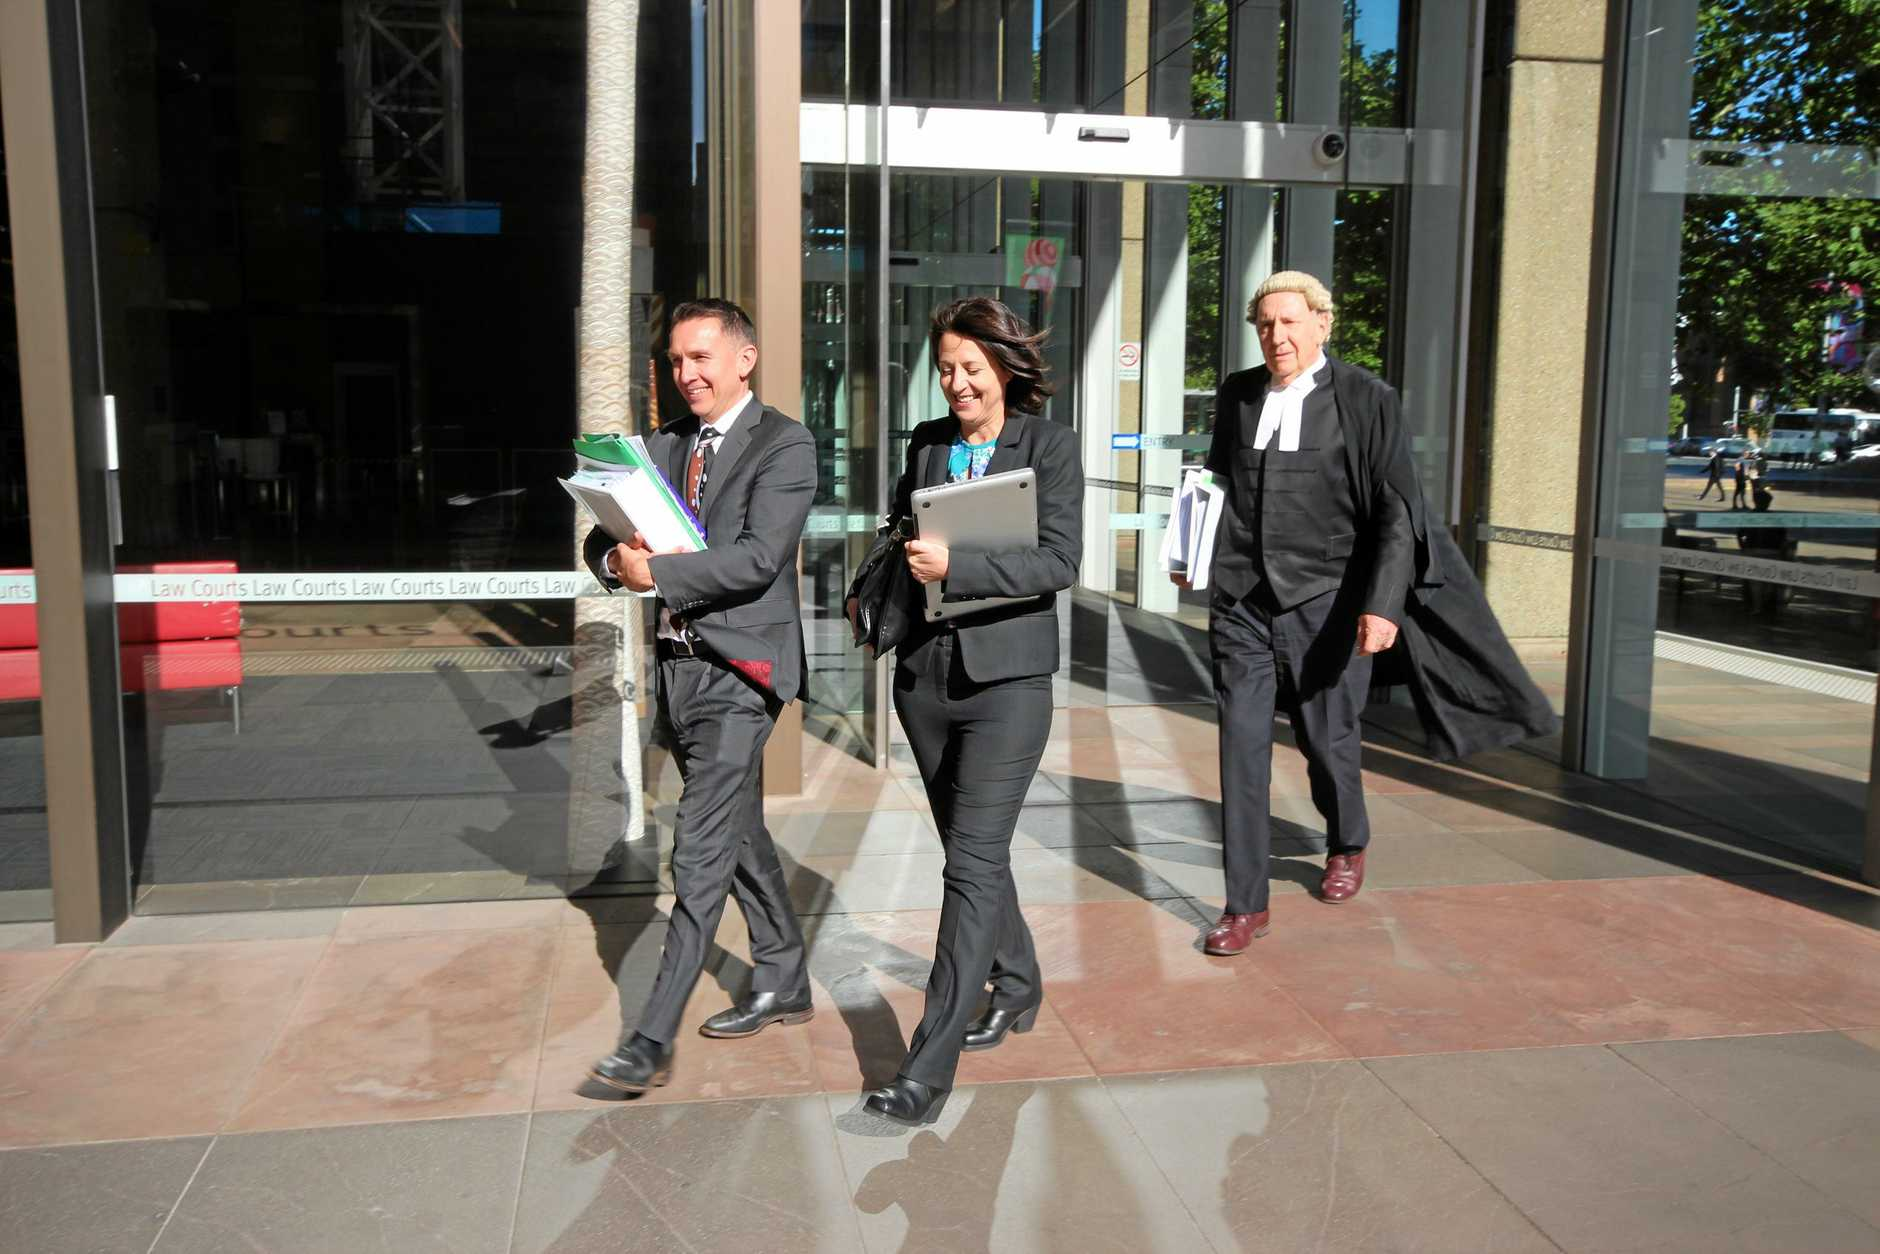 Esther Rockett (centre) leaves Sydney Supreme Court with solicitor Stewart O'Connell and barrister Tom Molomby after a December, 2018 hearing in the defamation case brought against her by Universal Medicine leader Serge Benhayon.